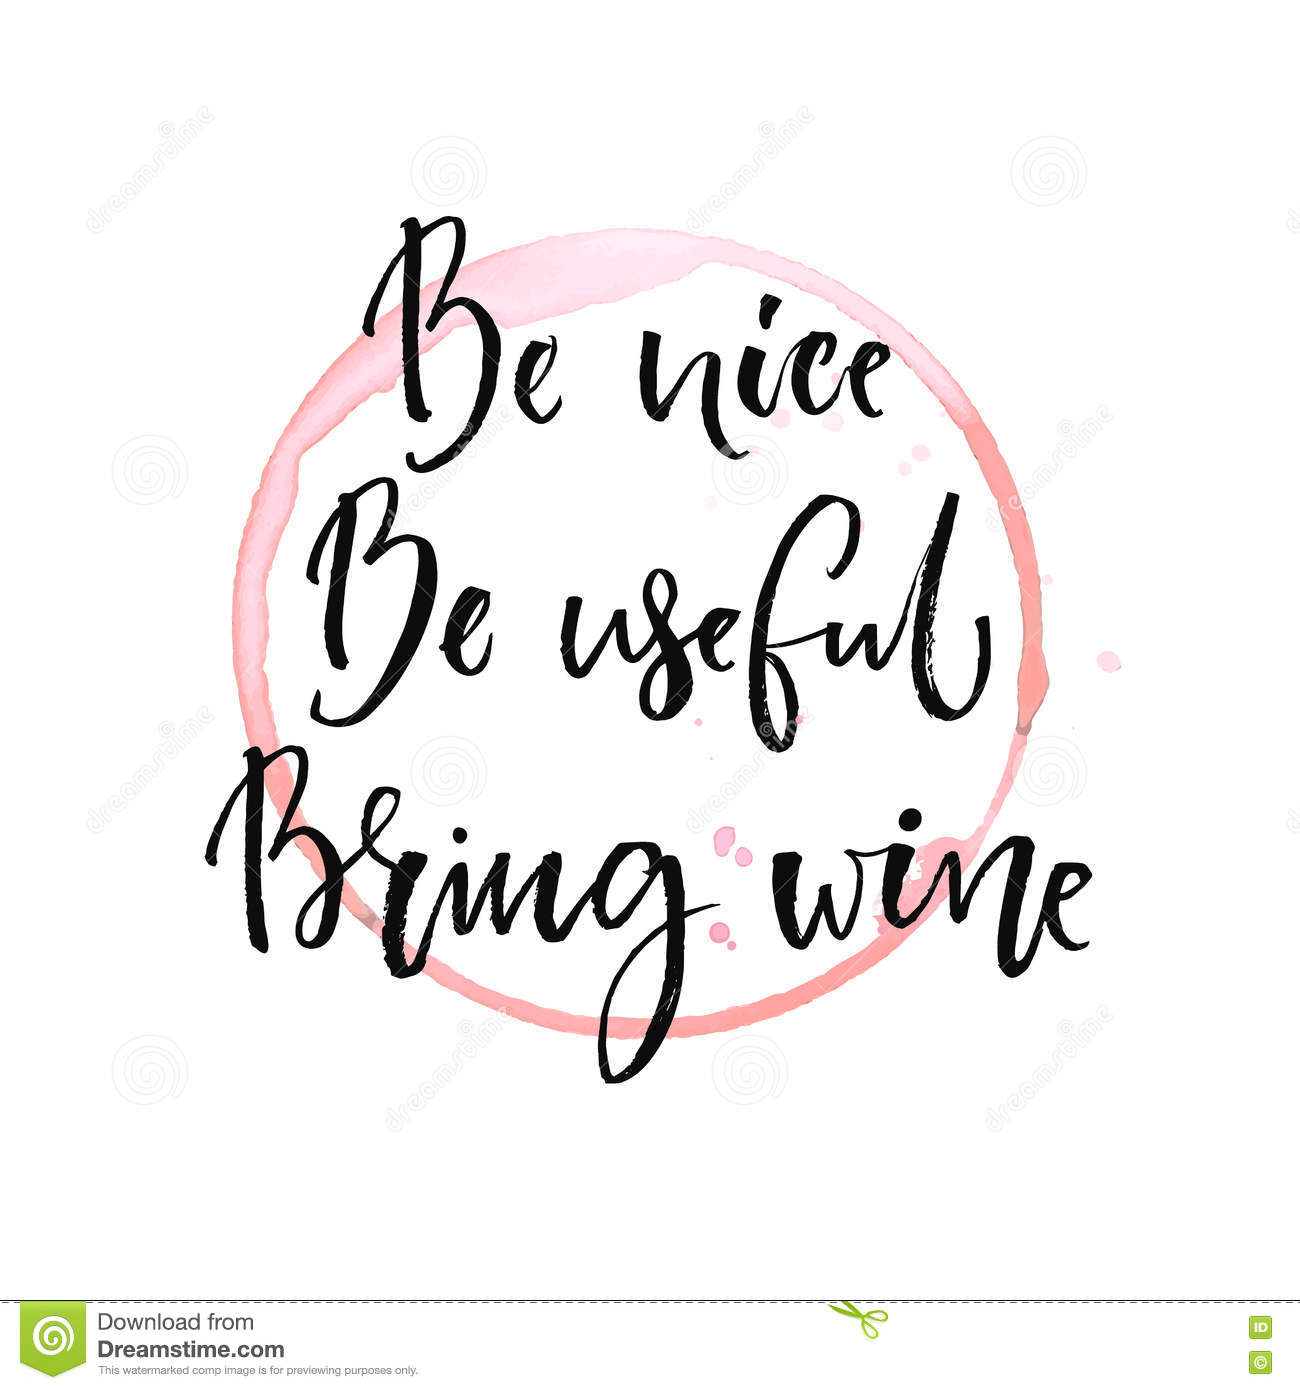 Be nice, be useful, bring wine. Funny quote about drinking with round trace of wine glass. Black ink calligraphy at